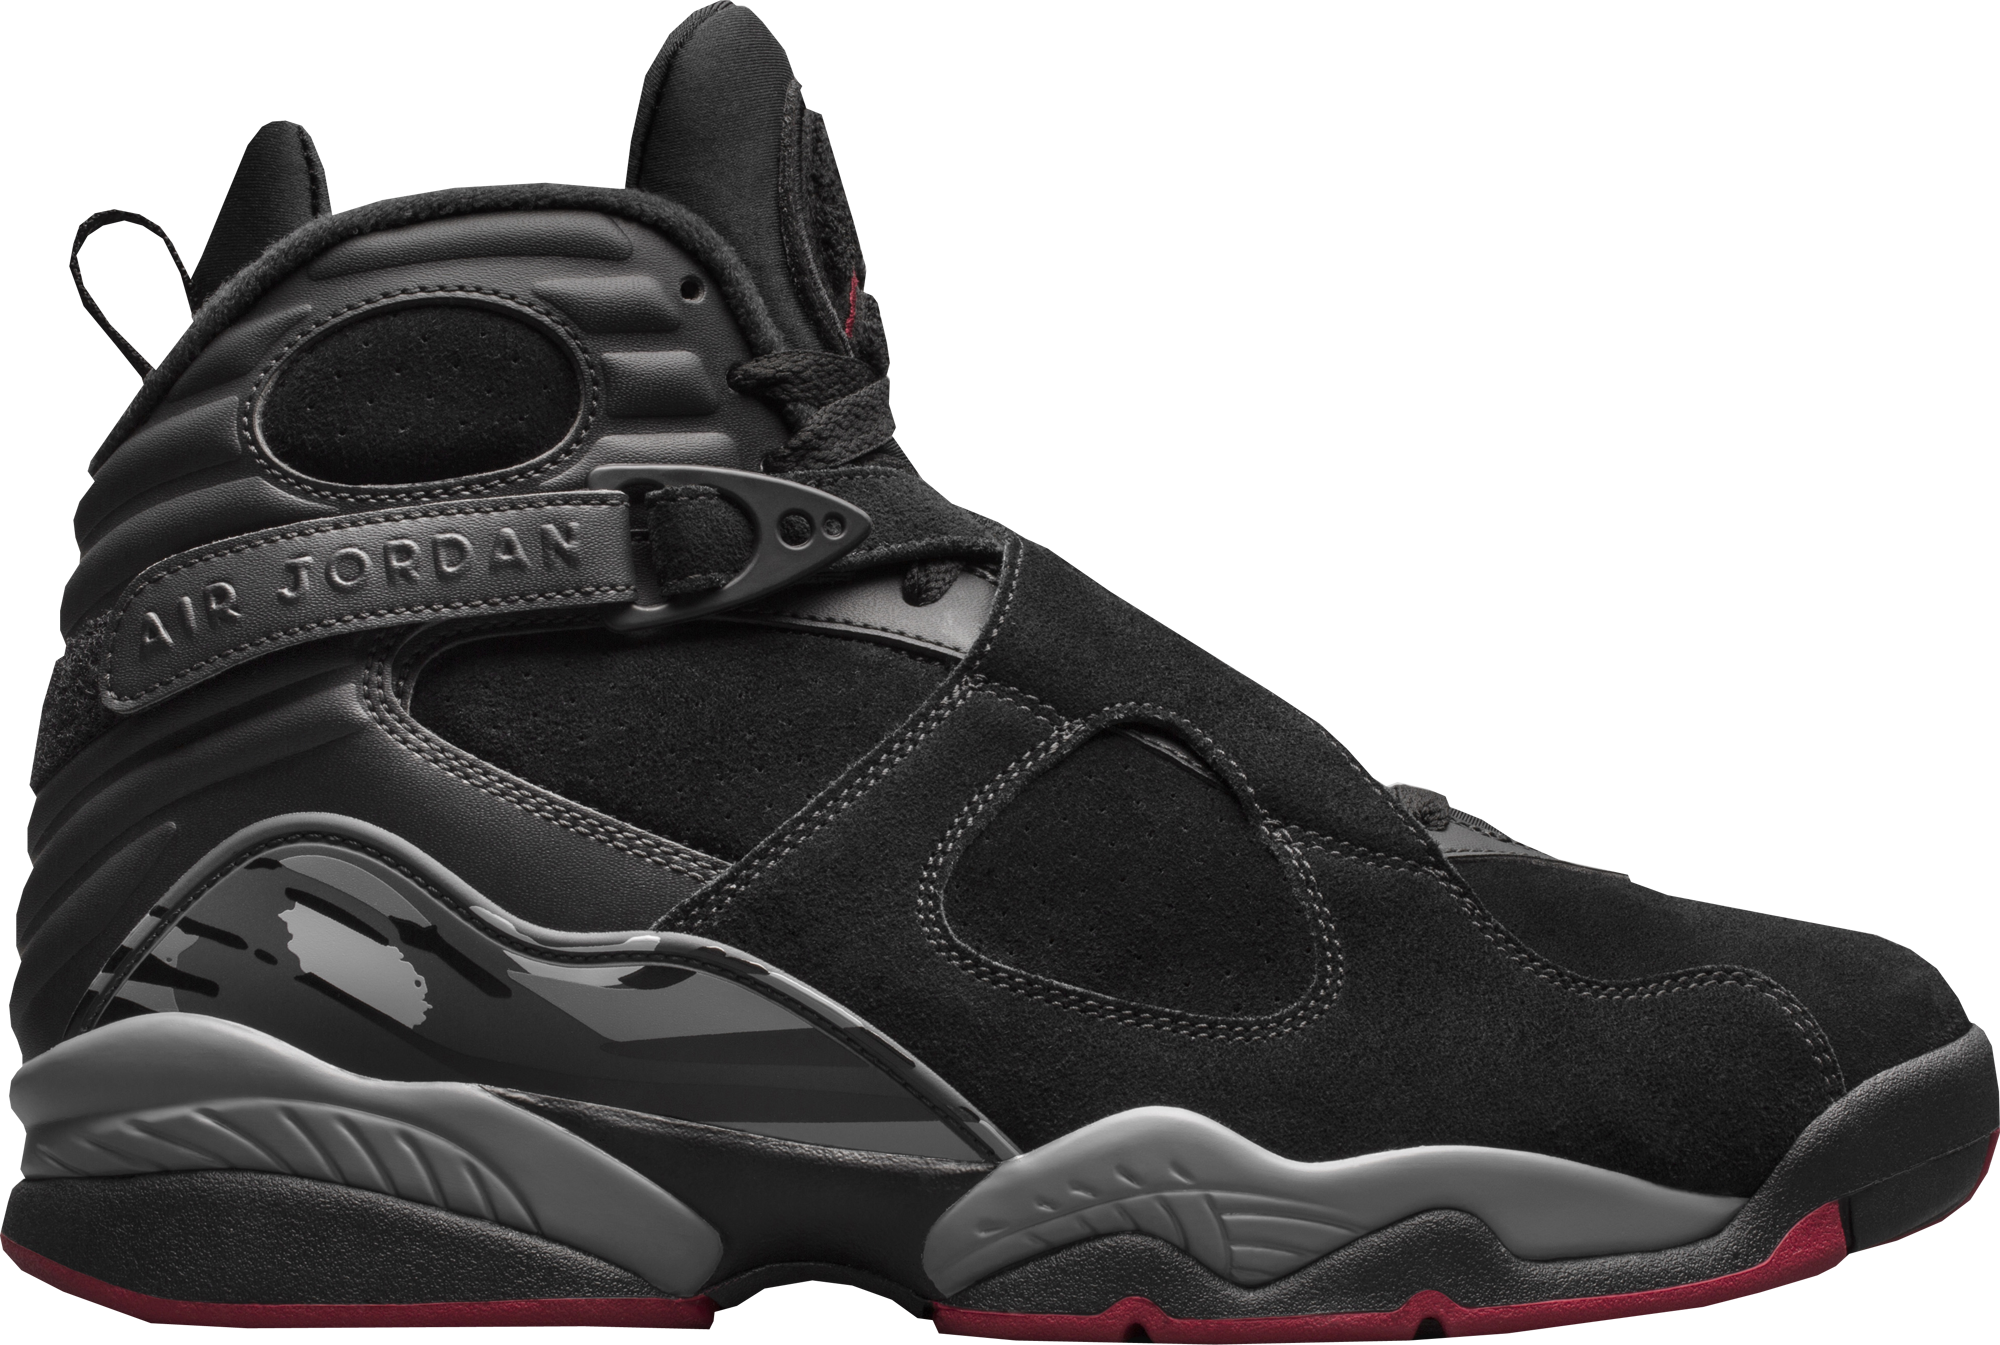 innovative design 520b6 de73e Air Jordan 8 Retro Black Cement